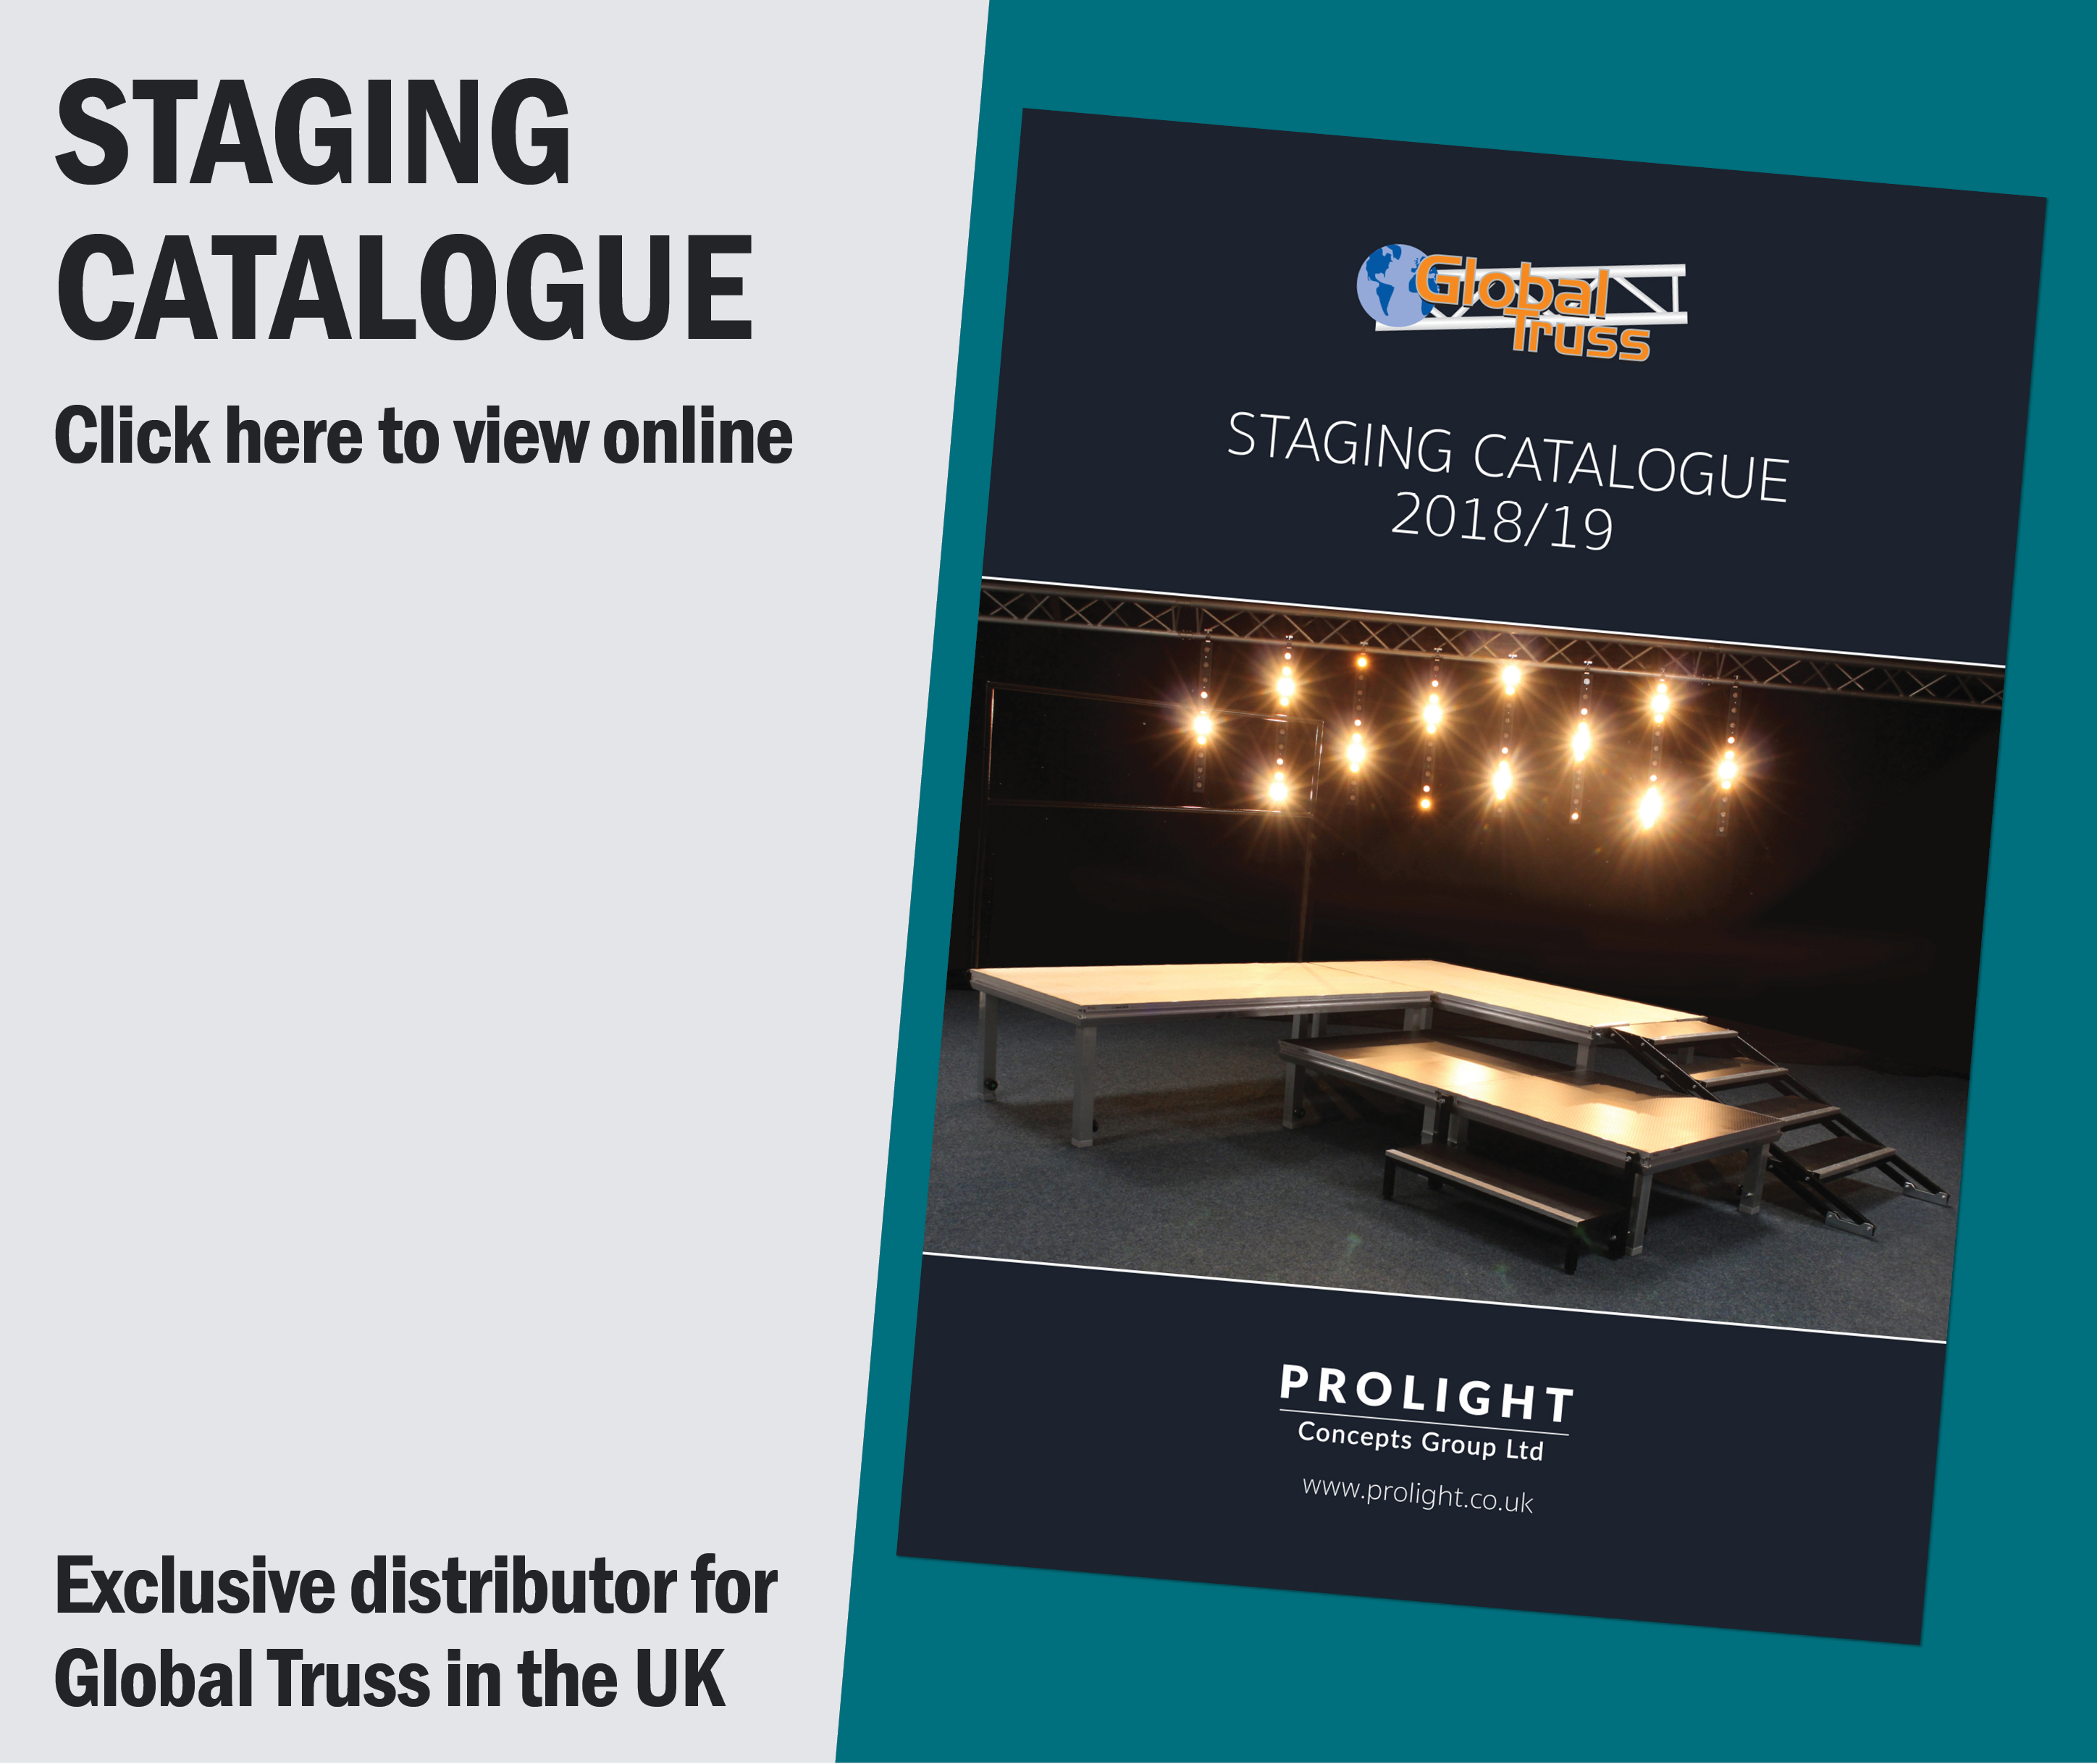 Prolight Concepts Staging Catalogue